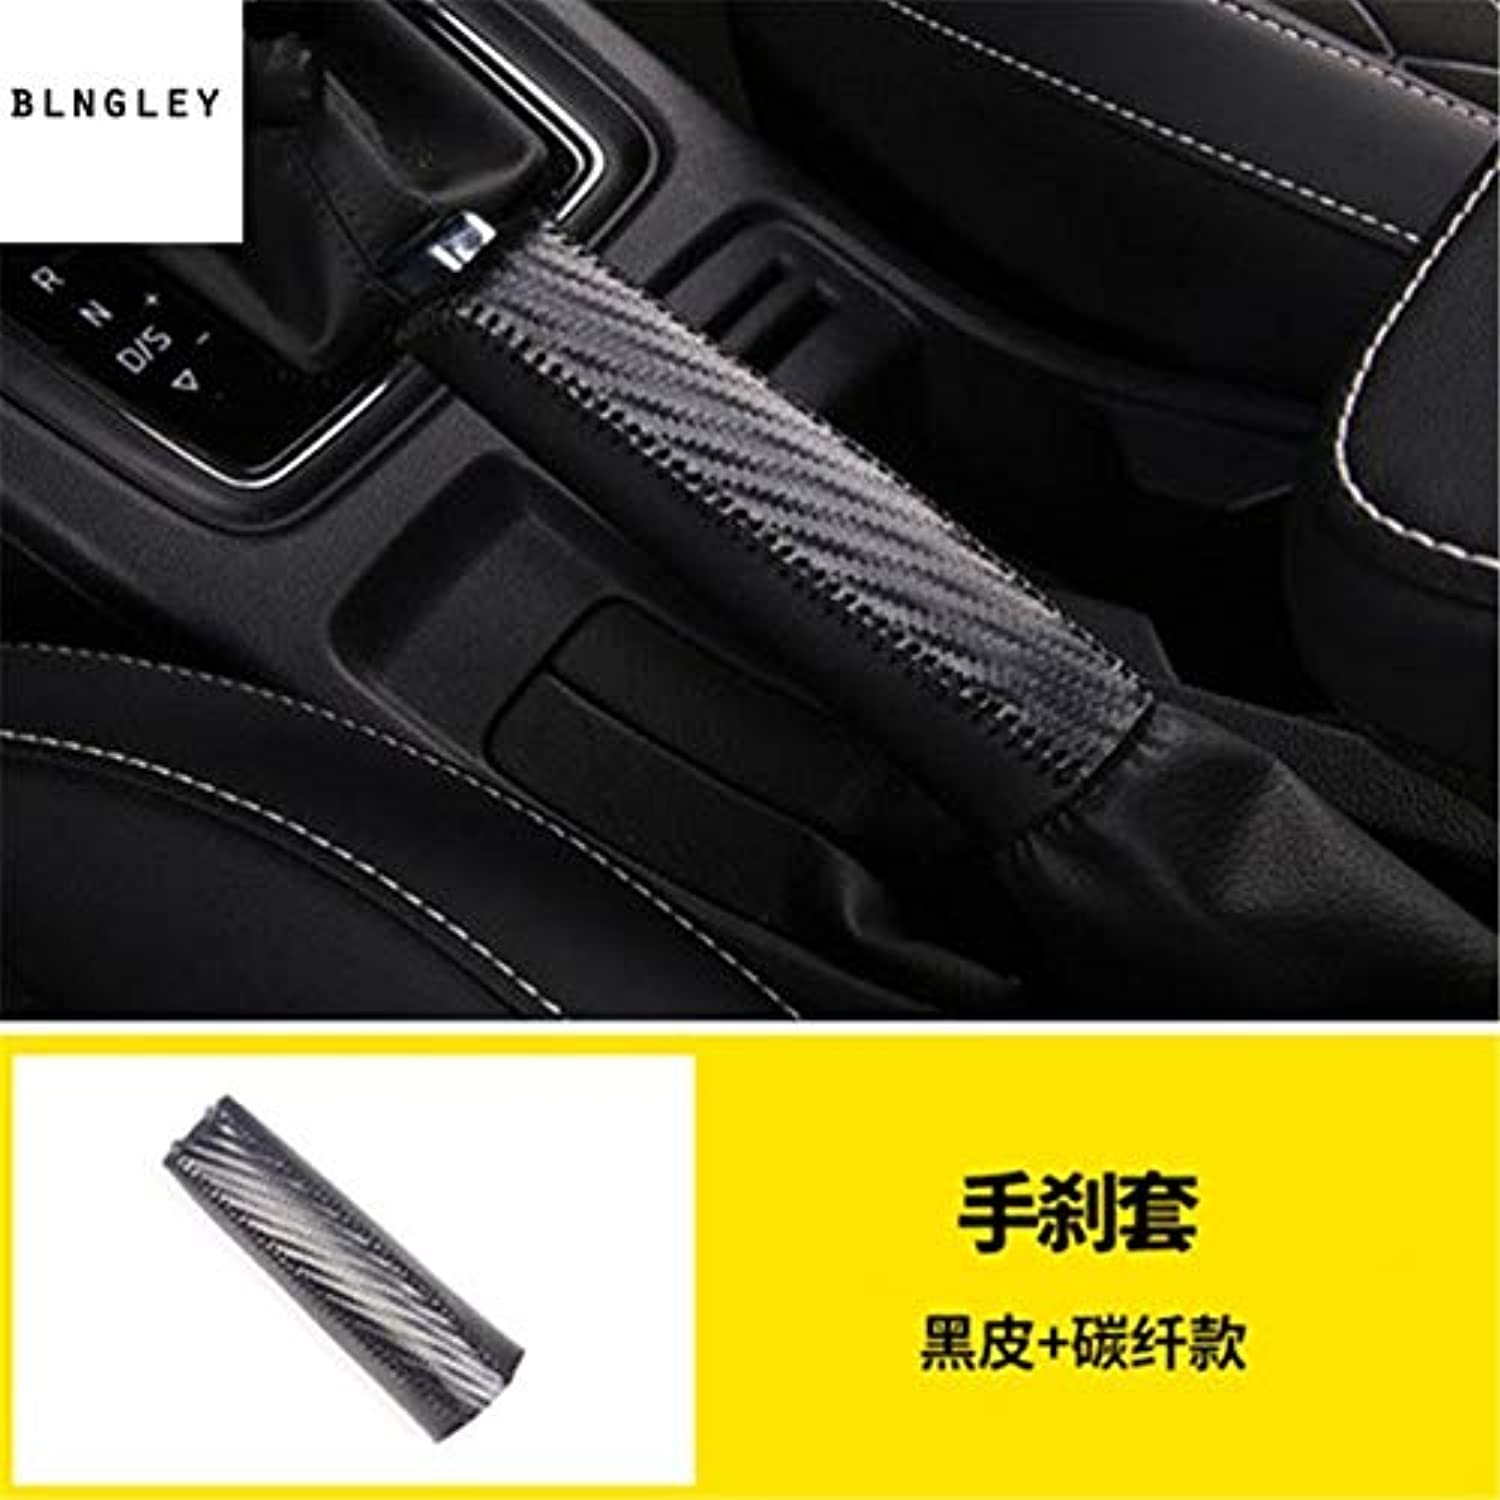 1pc PU Leather Parking Brake Hand Brake Cover for 2018 Skoda KAROQ car Accessories  (color Name  Black)